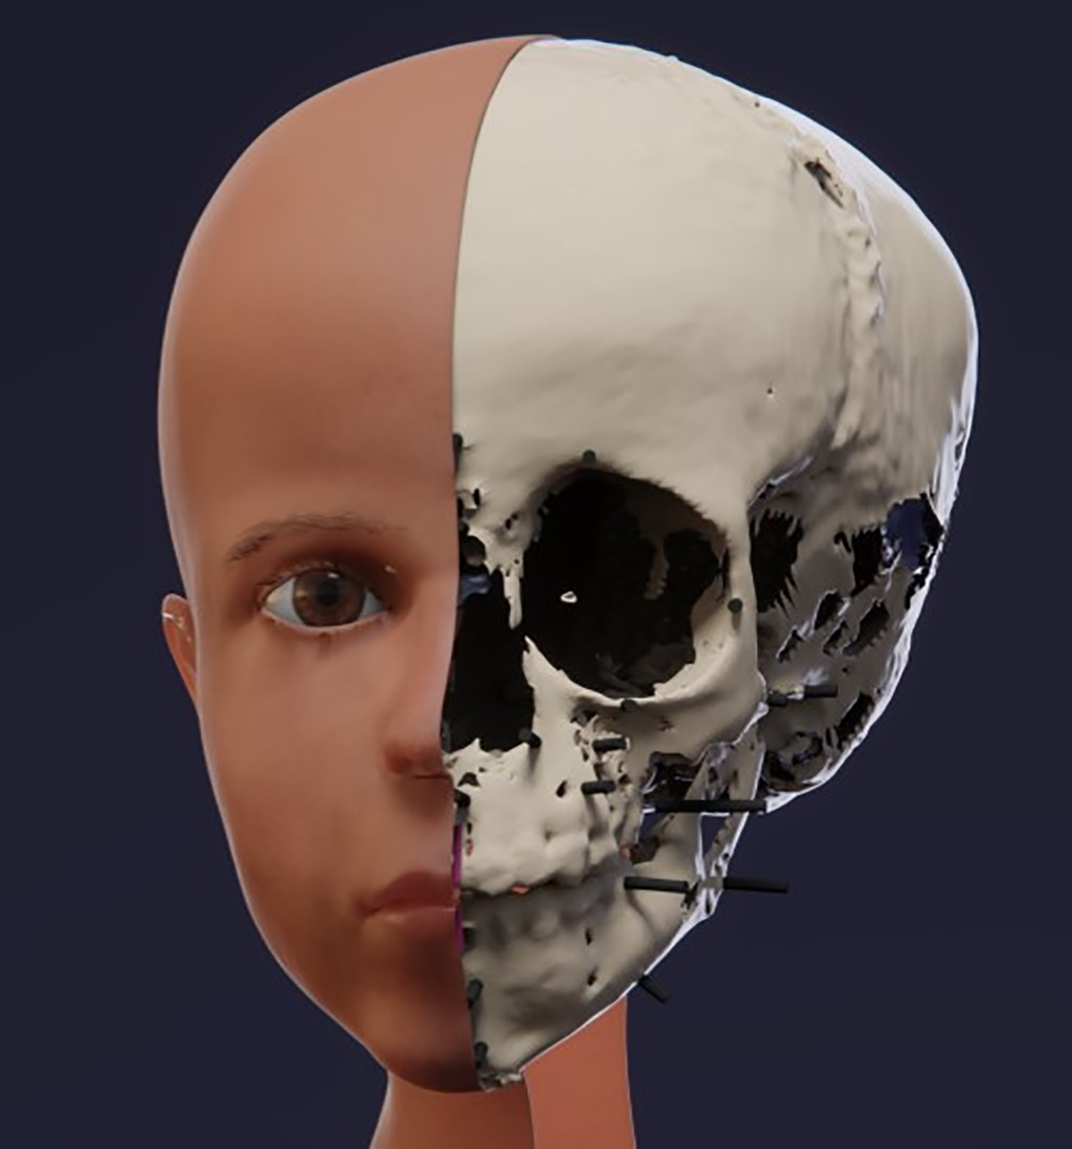 3-D Reconstruction Reveals the Face of an Ancient Egyptian Toddler